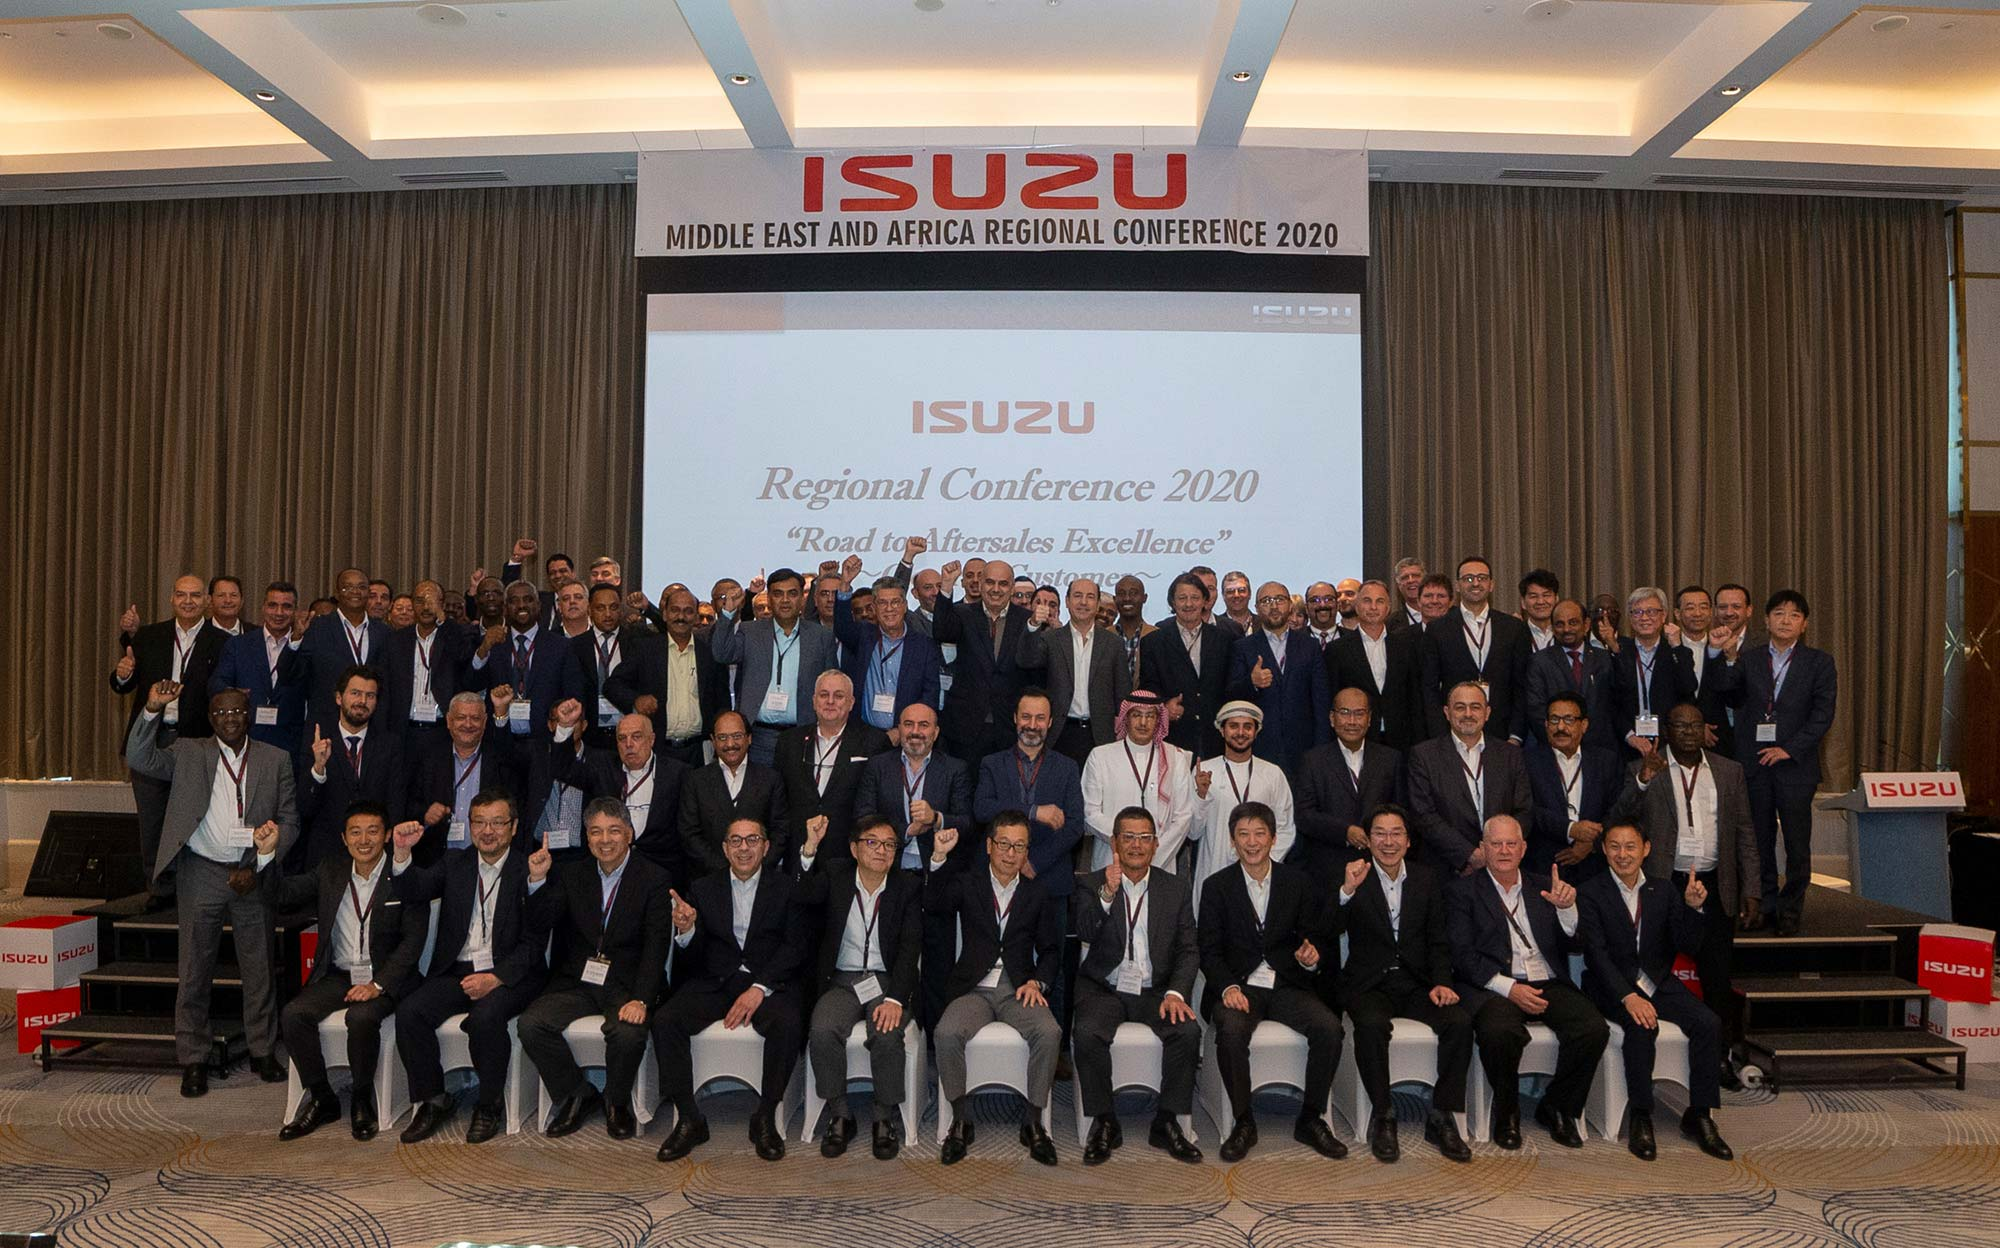 Isuzu Middle East and Africa Regional Conference 2020 Group Photo